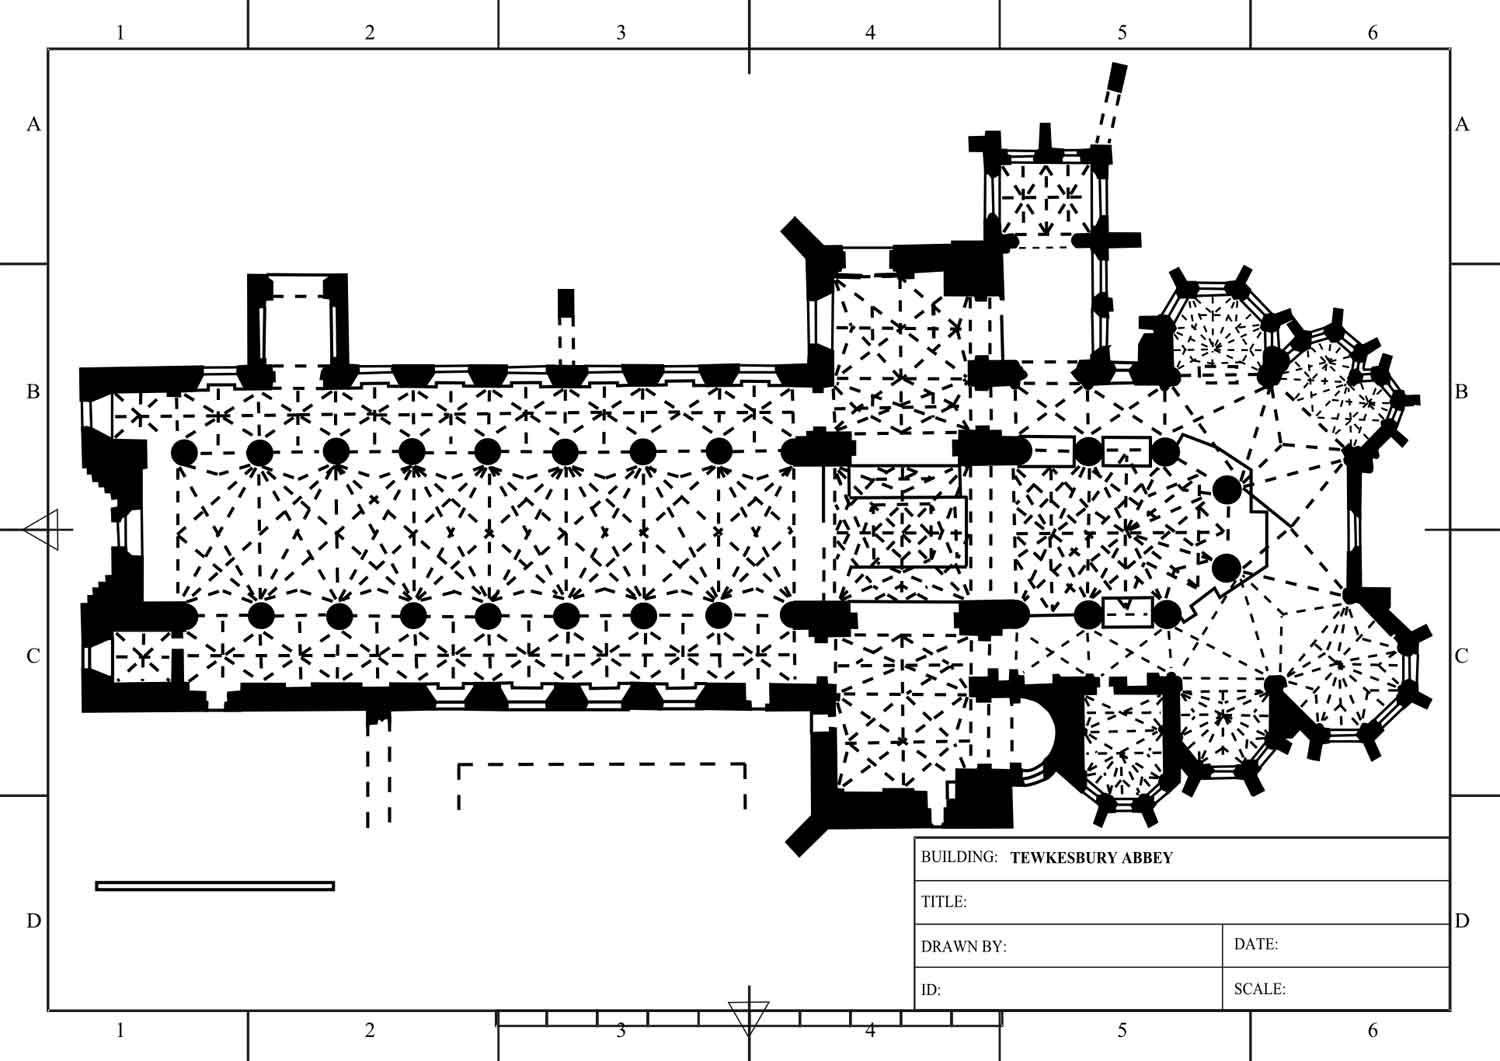 Bury tower house floor plan - Medieval And Middle Ages History Timelines Tewkesbury Abbey